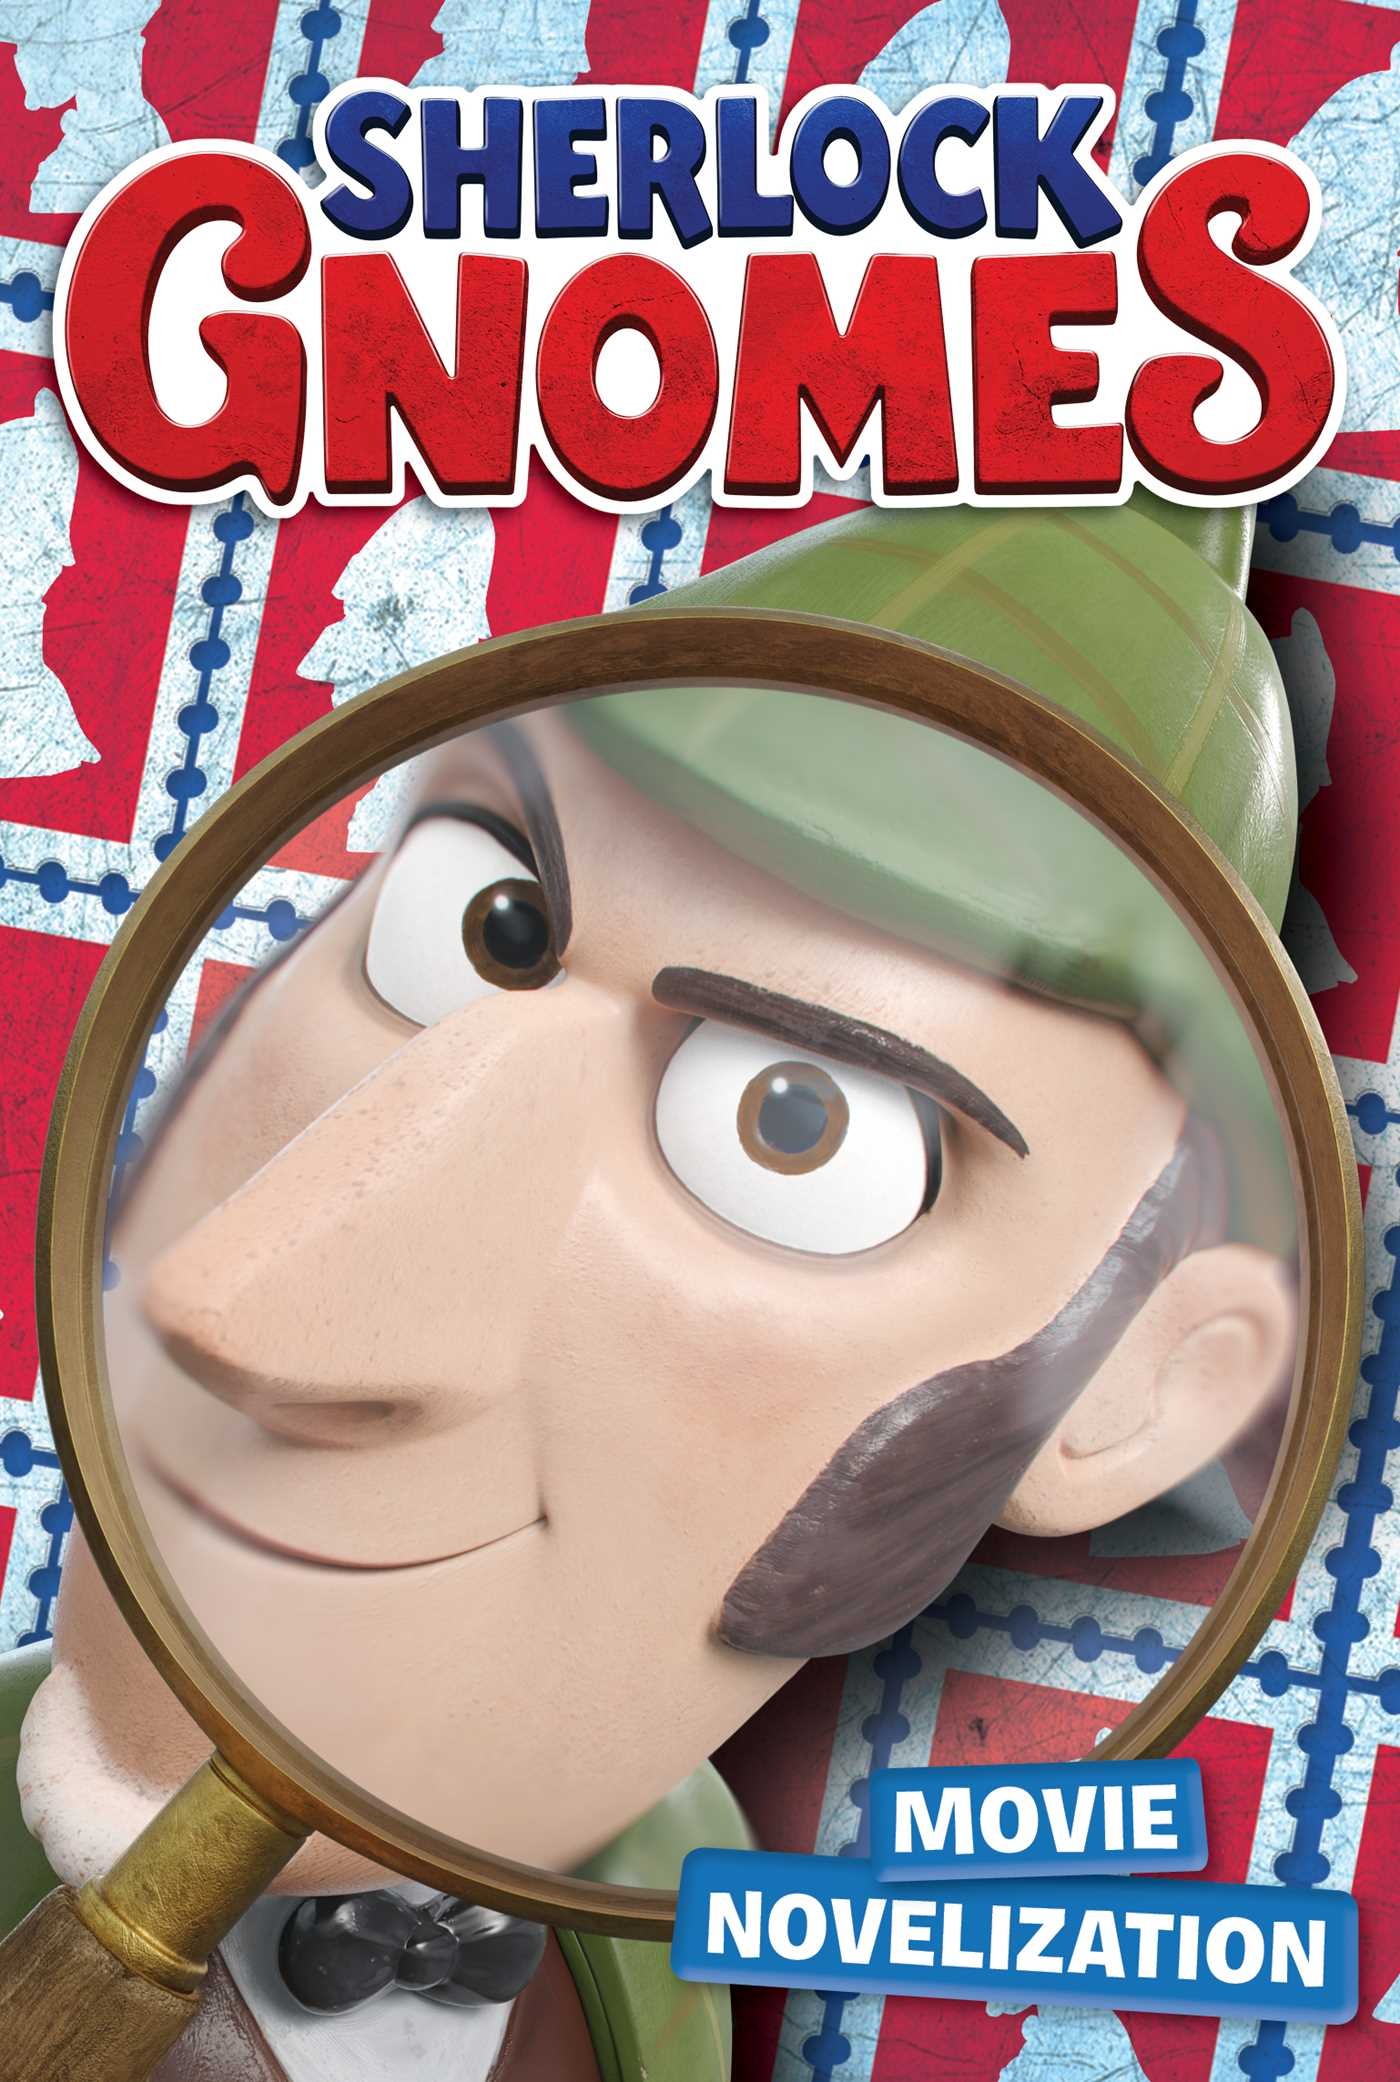 Sherlock Gnomes Movie Novelization  Book by Mary